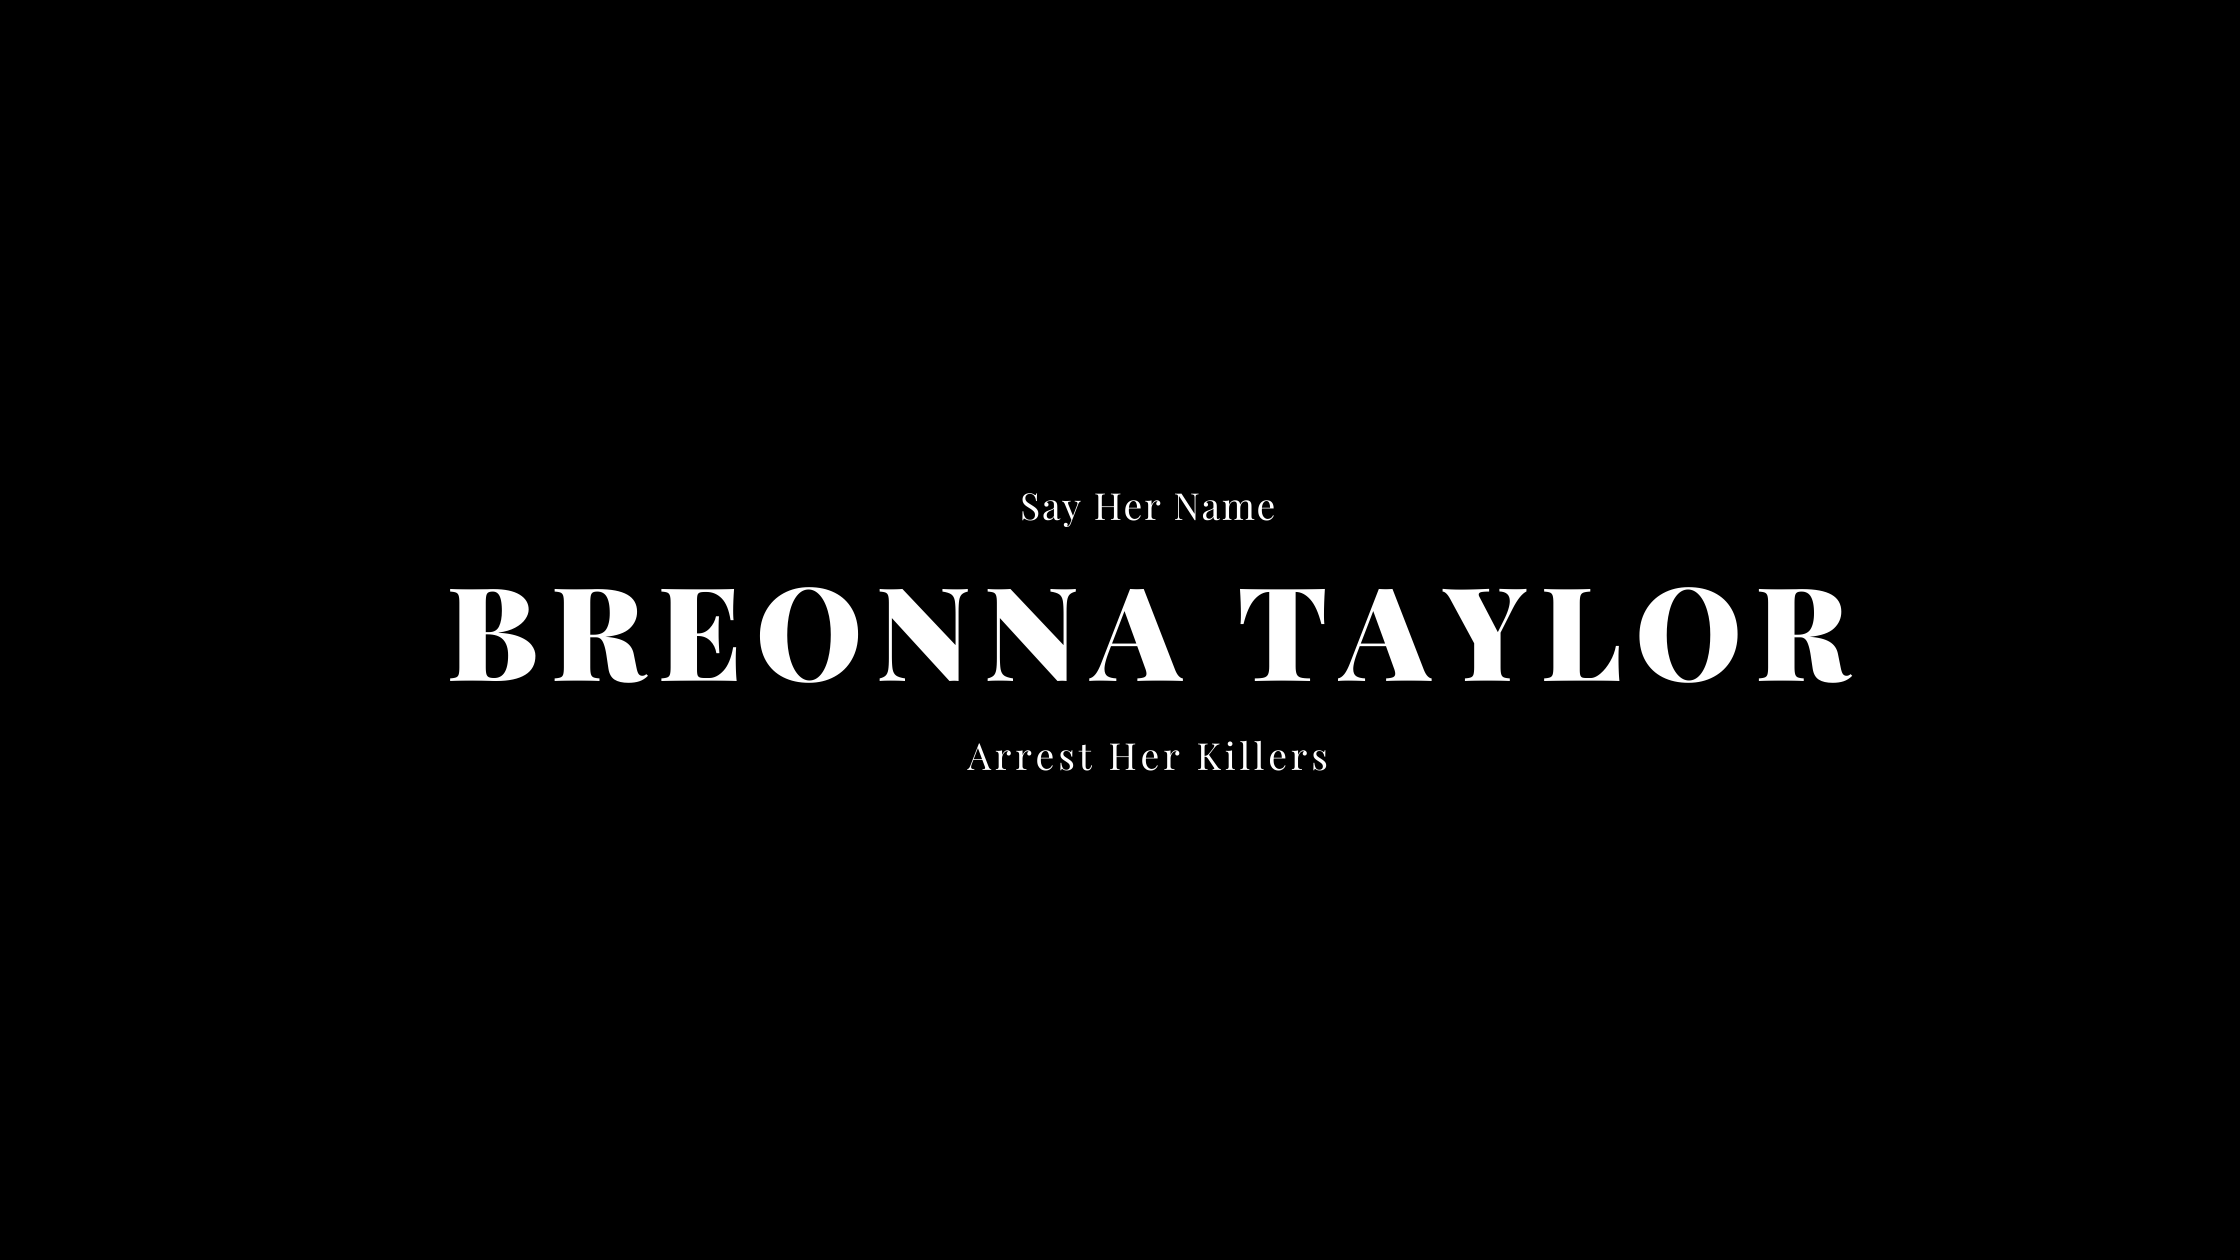 Say Her Name Breonna Taylor